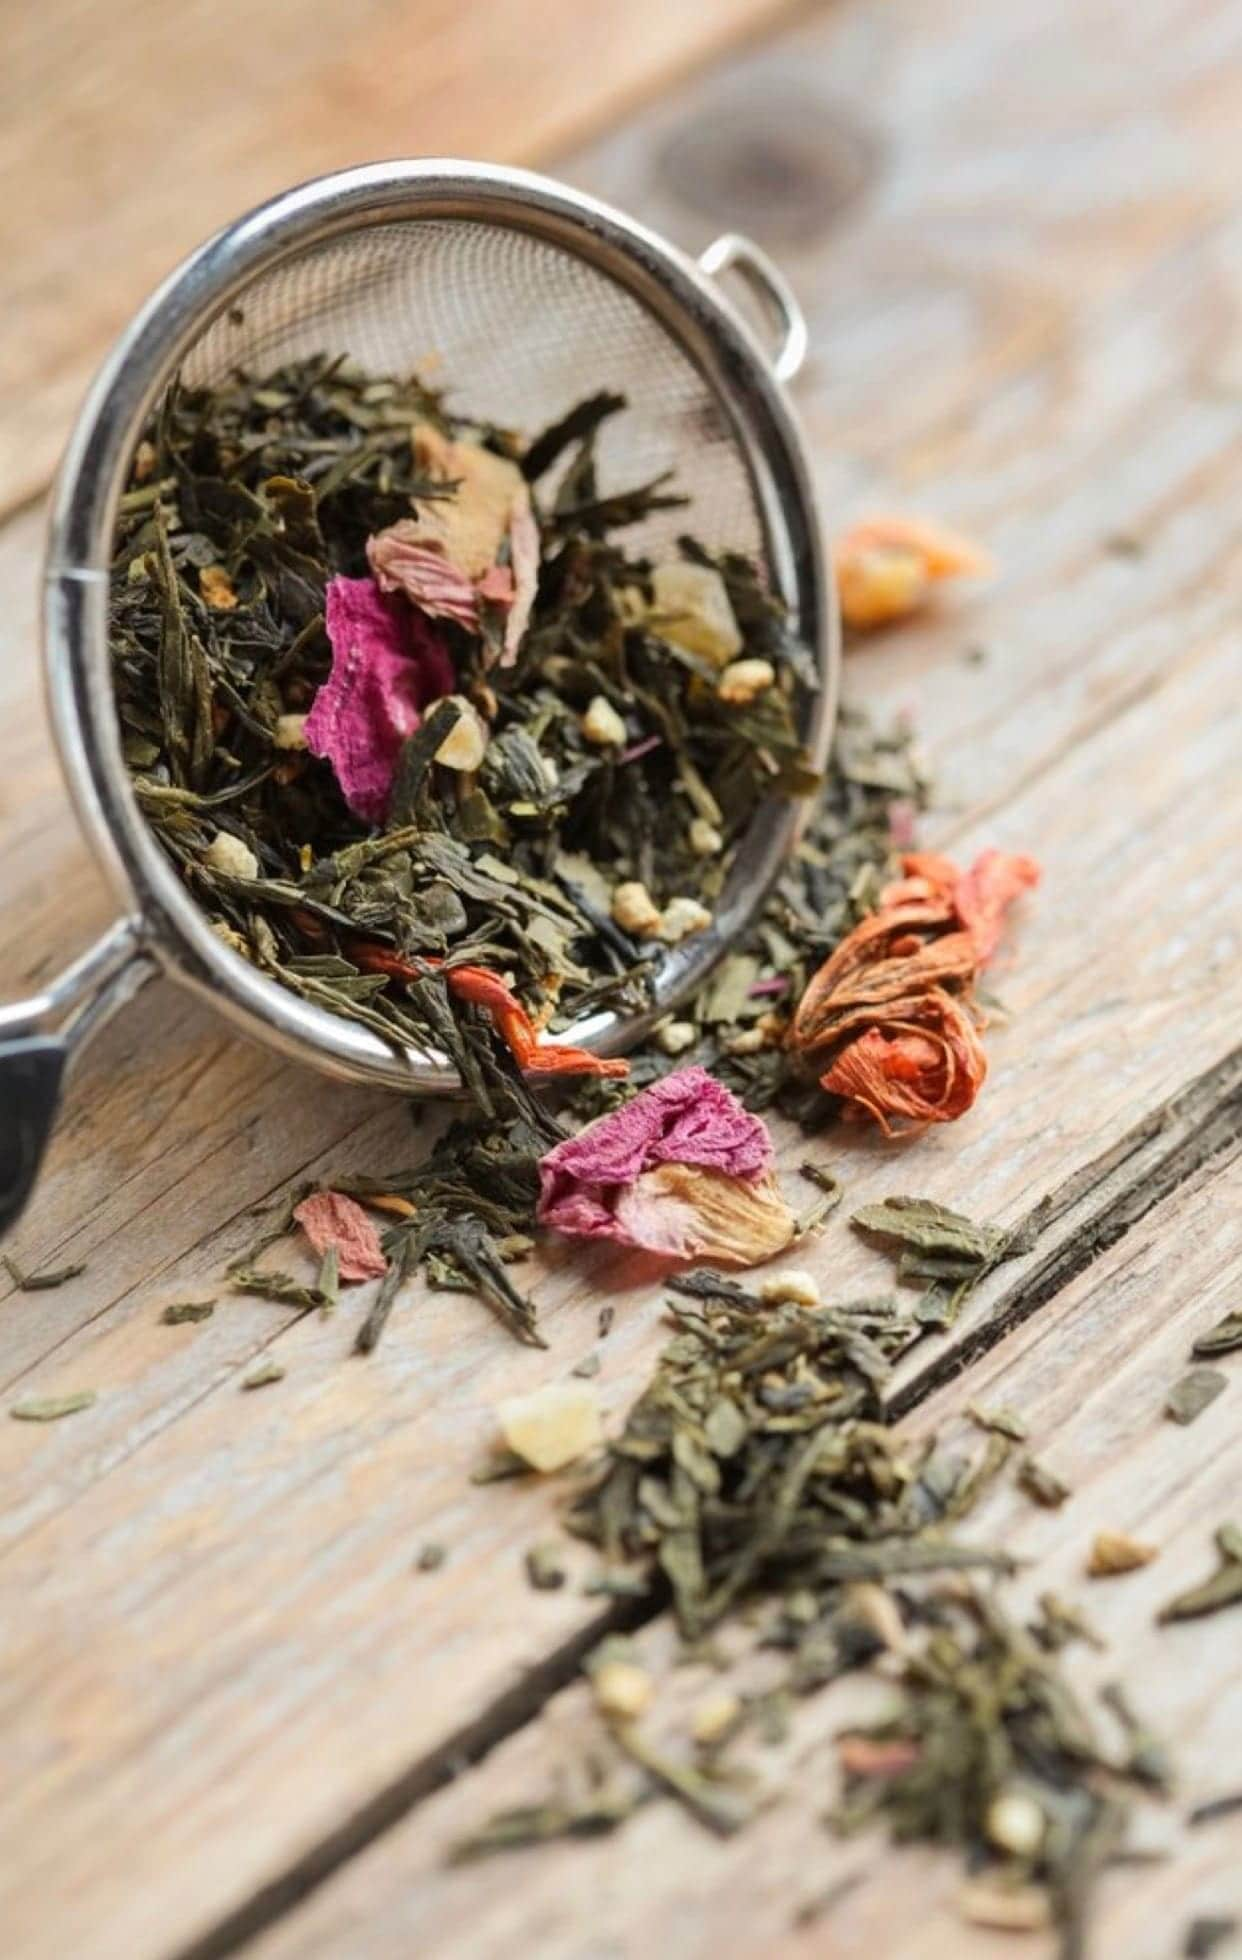 herbal recommendations relieve stress naturally